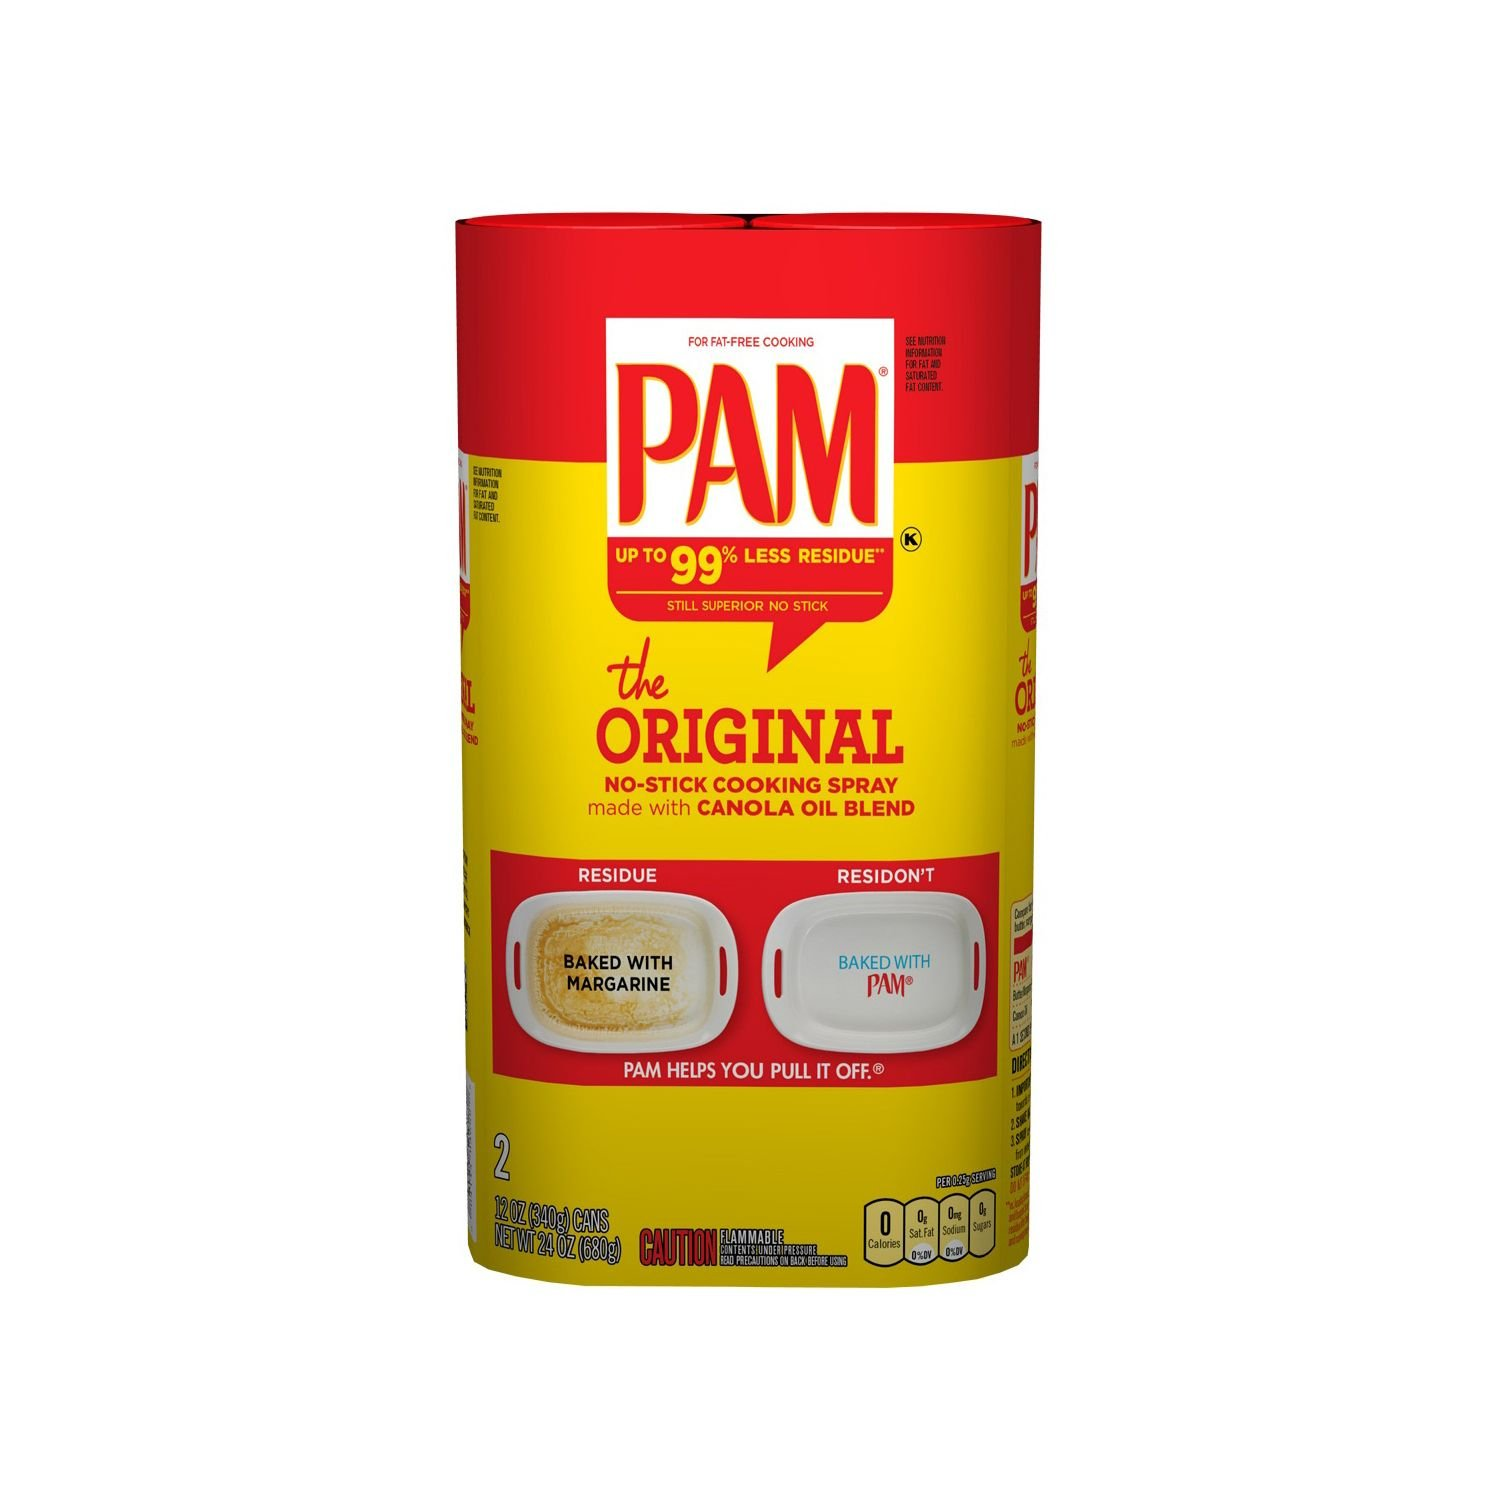 Pam Original No-Stick Cooking Spray 100% natural Canola Oil ,SIX (6) pack - 12oz each can by PAM (Image #1)